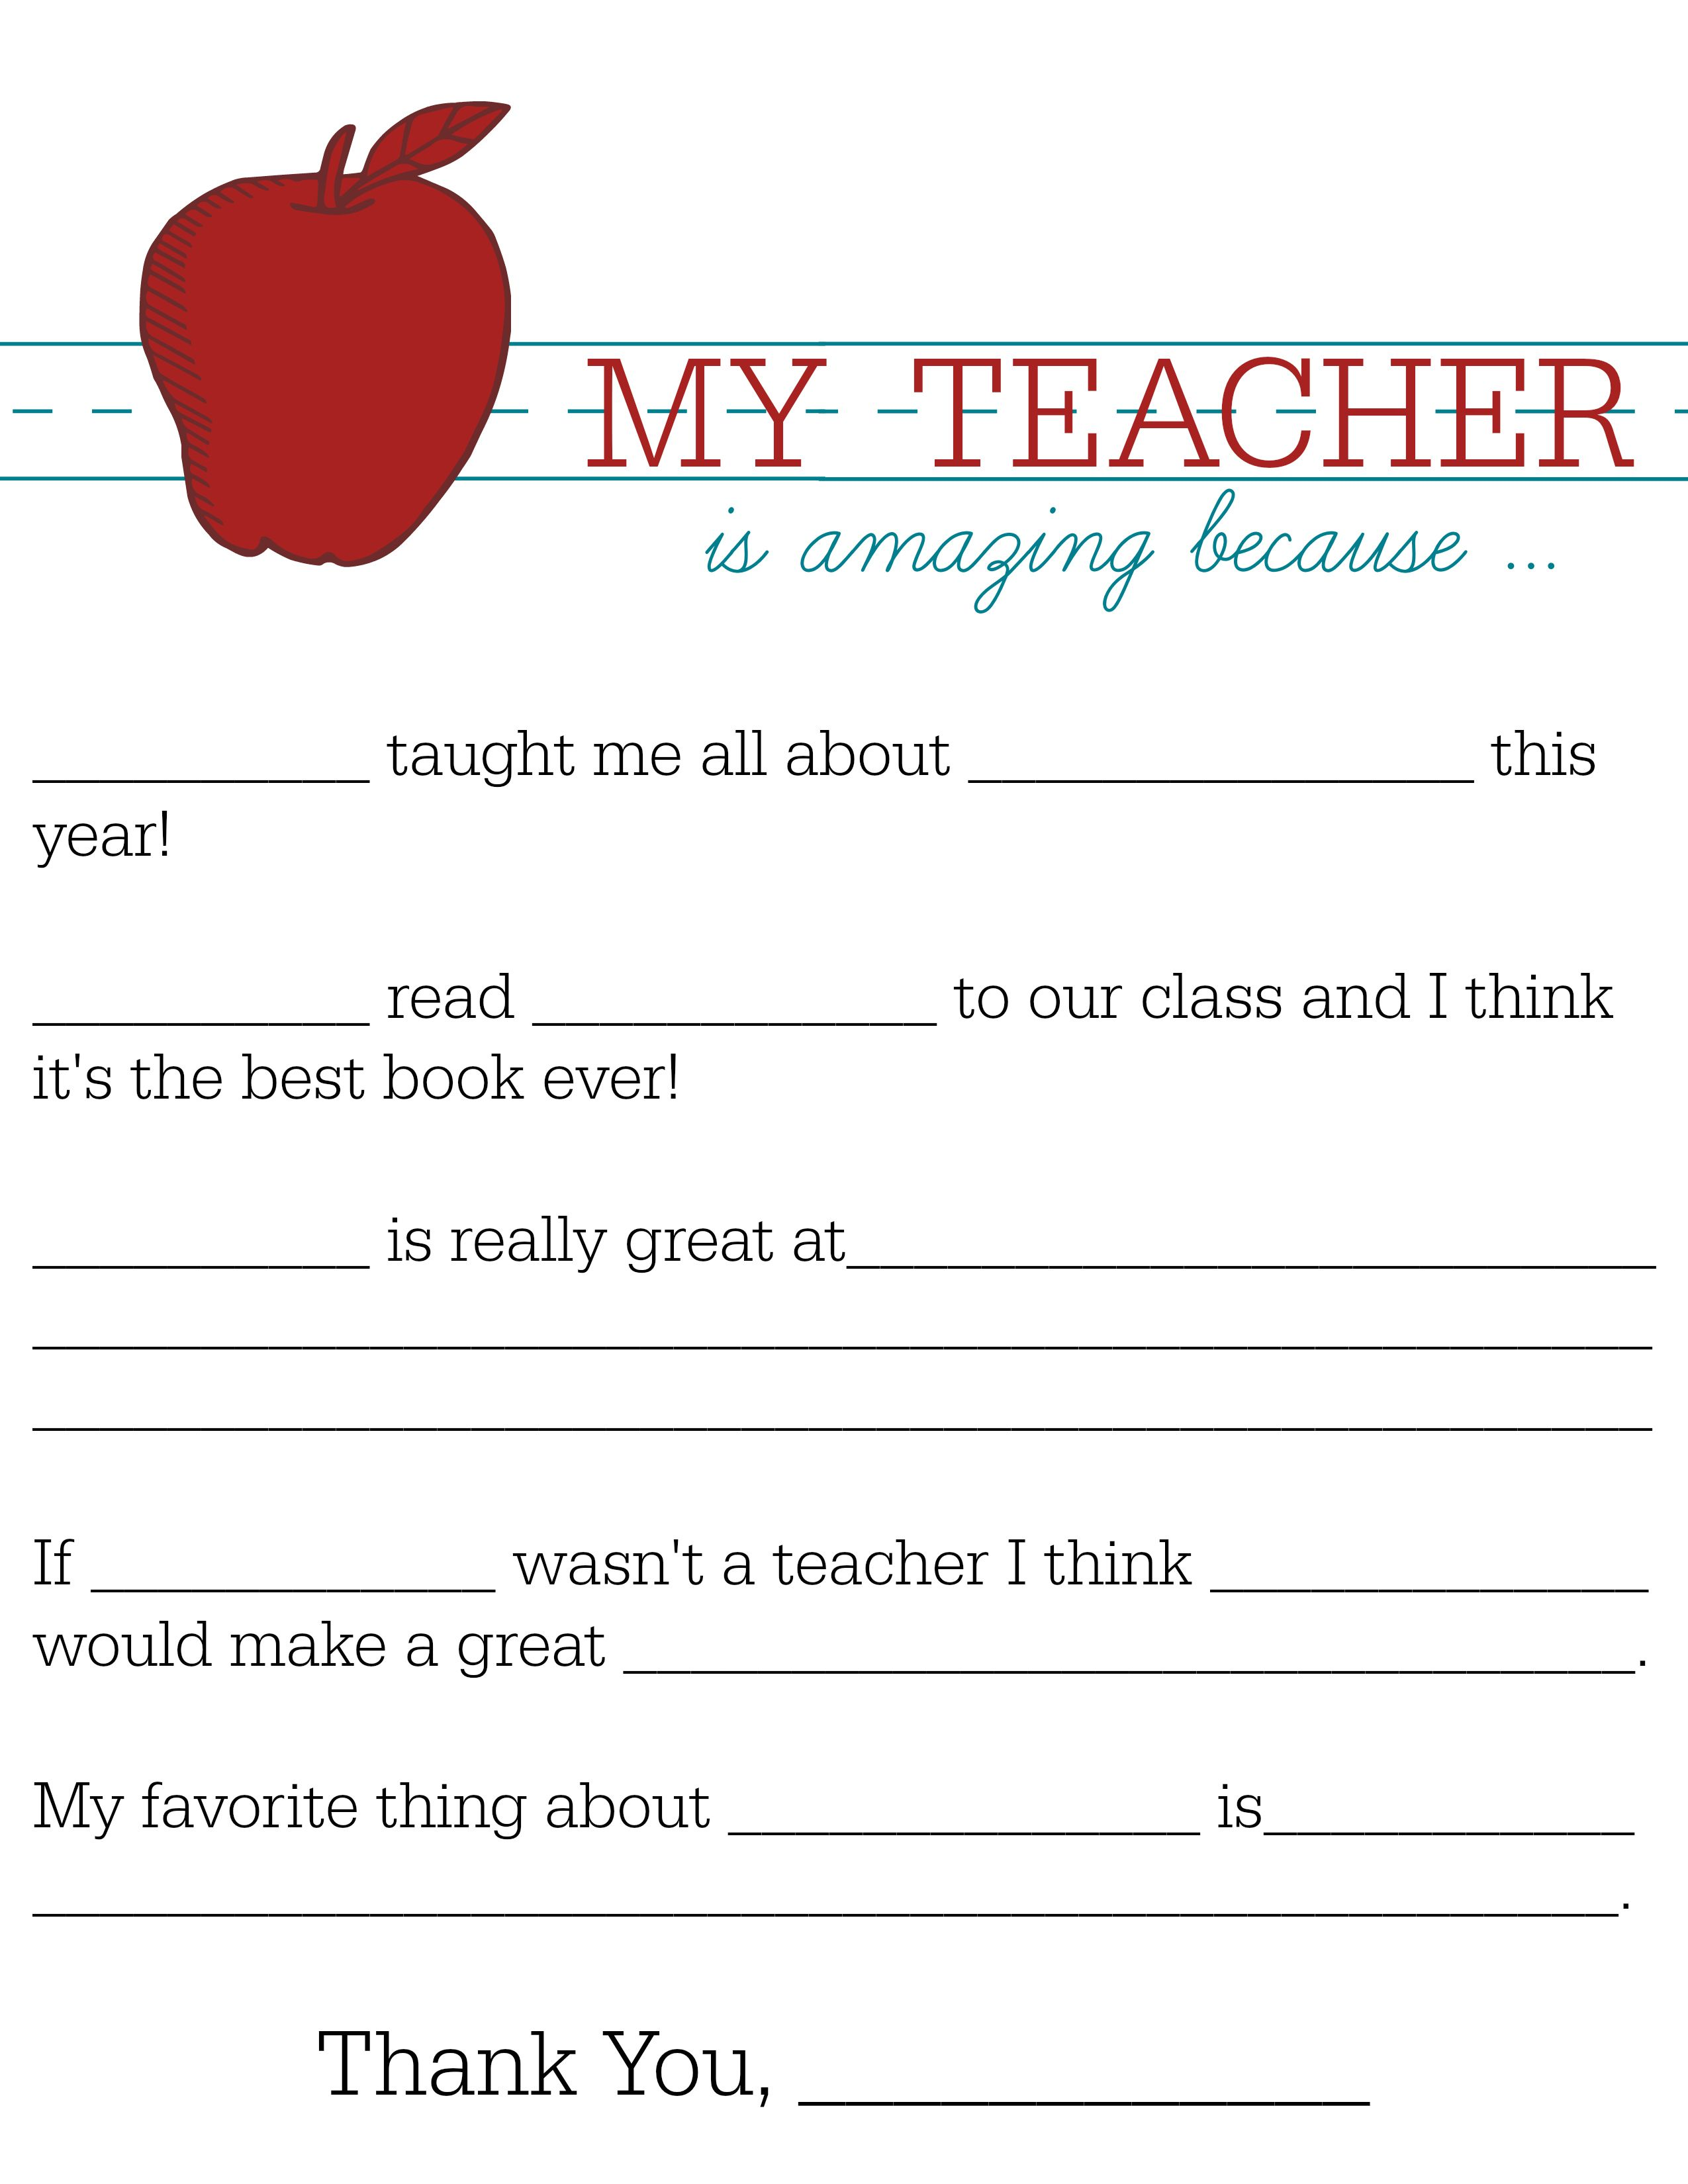 Refreshing image inside all about my teacher free printable